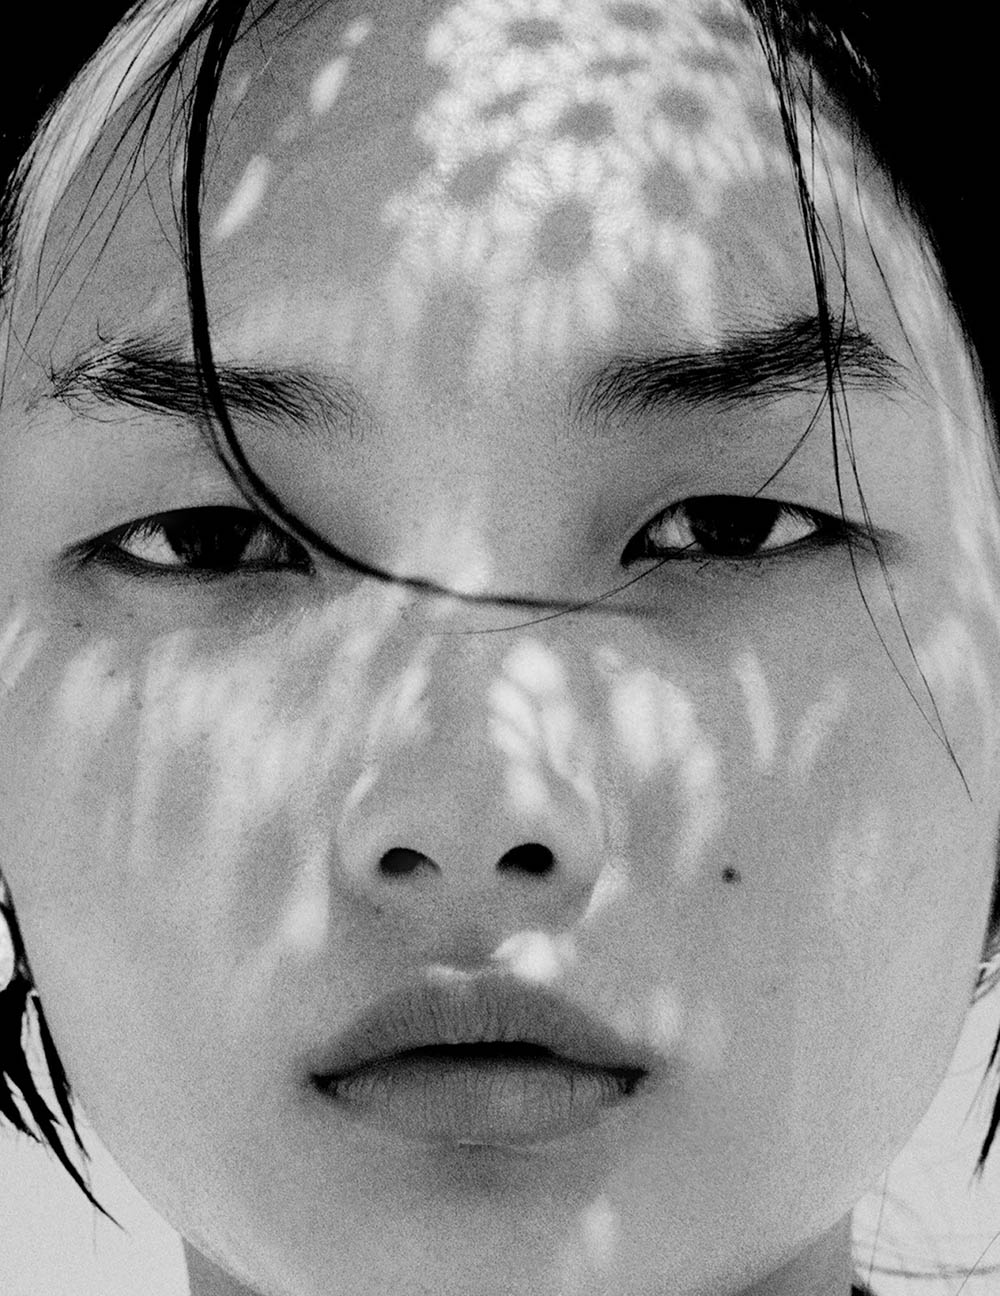 Ling Ling by Ina Lekiewicz for Vogue Portugal September 2019